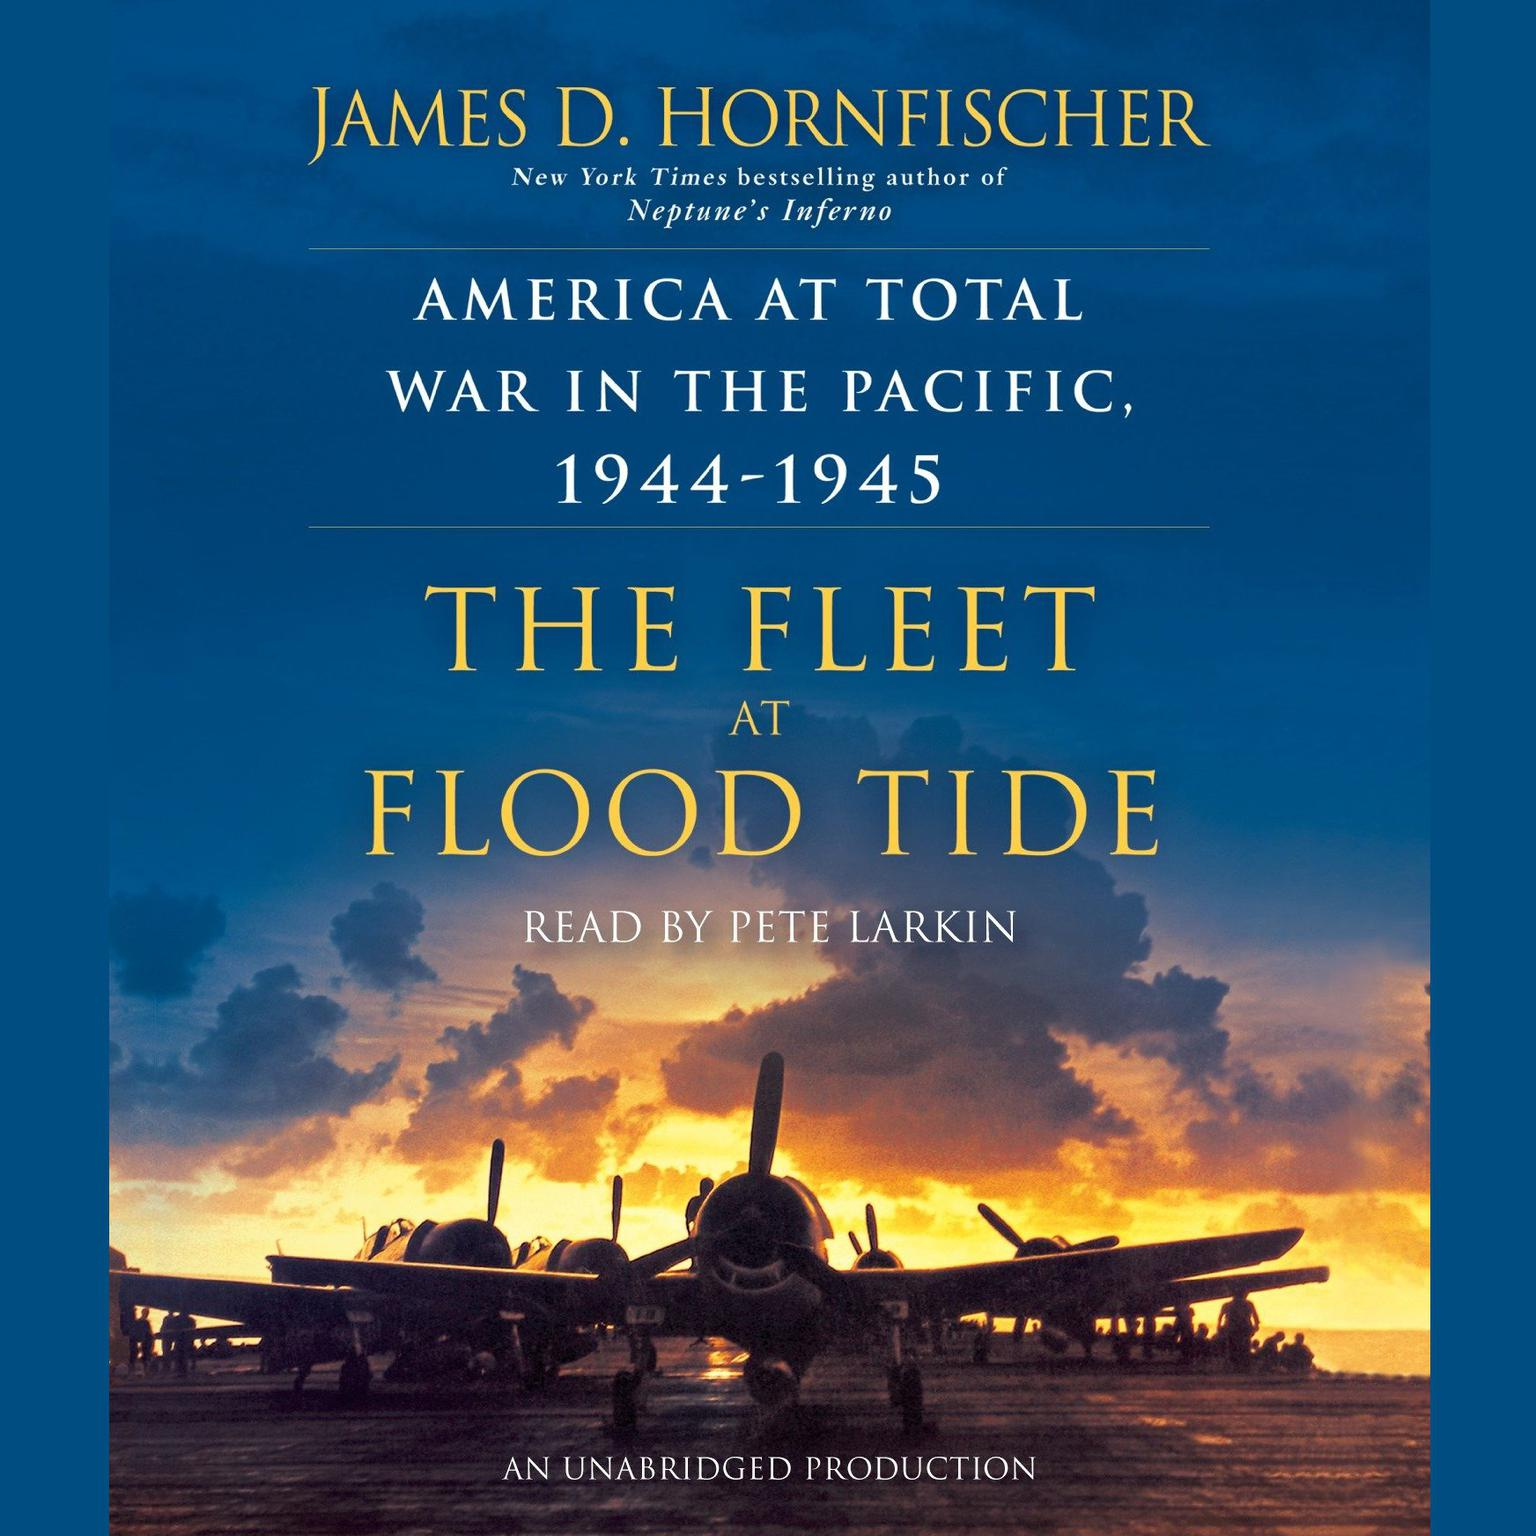 Printable The Fleet at Flood Tide: America at Total War in the Pacific, 1944-1945 Audiobook Cover Art